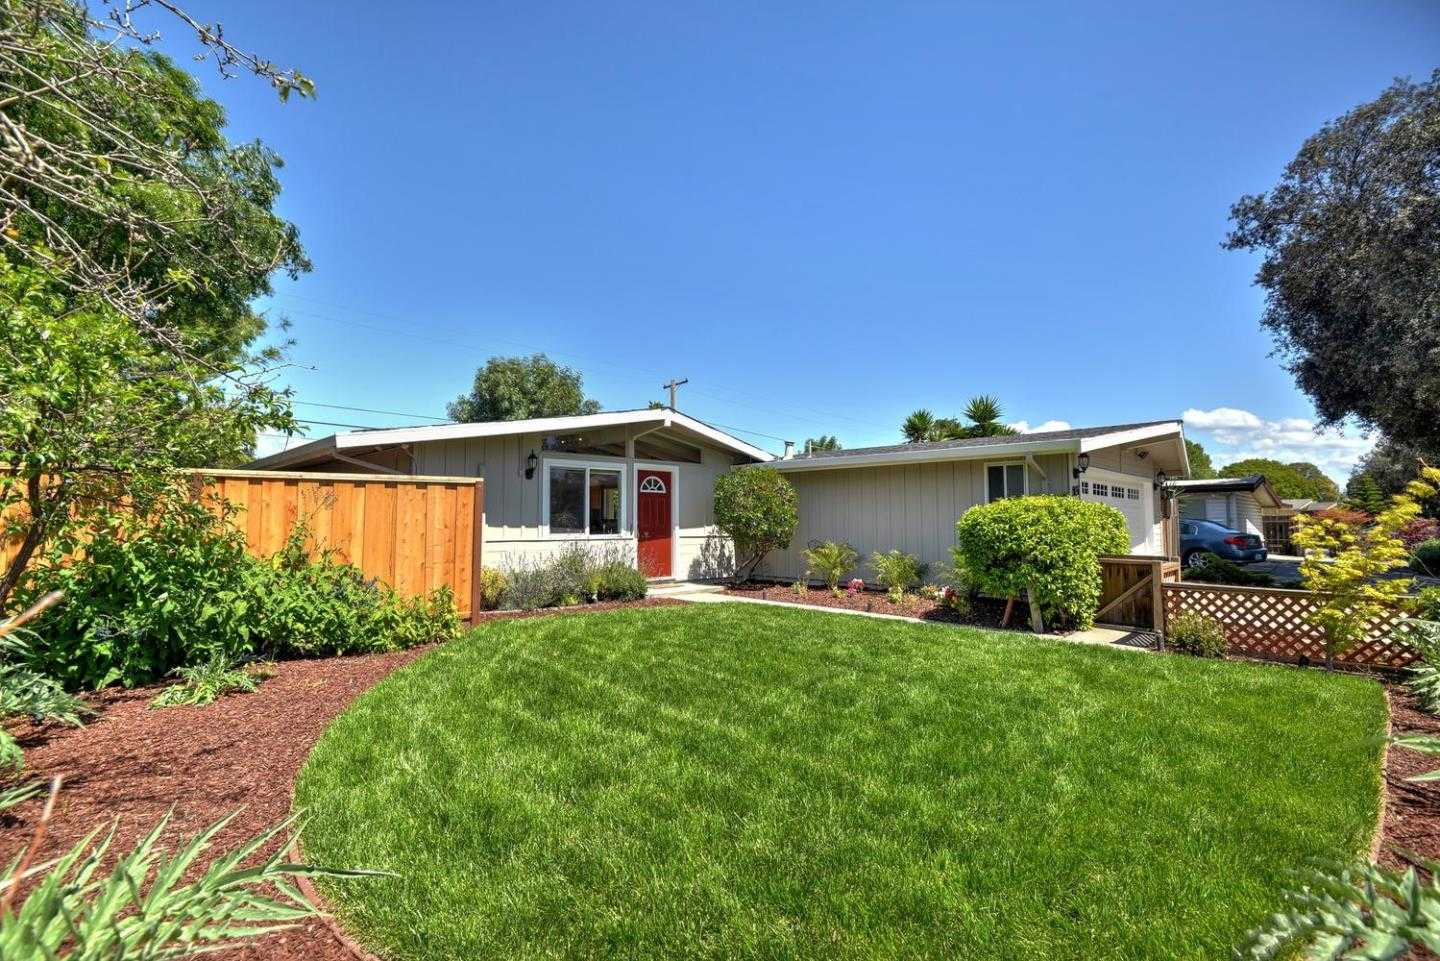 $1,098,000 - 3Br/2Ba -  for Sale in Sunnyvale